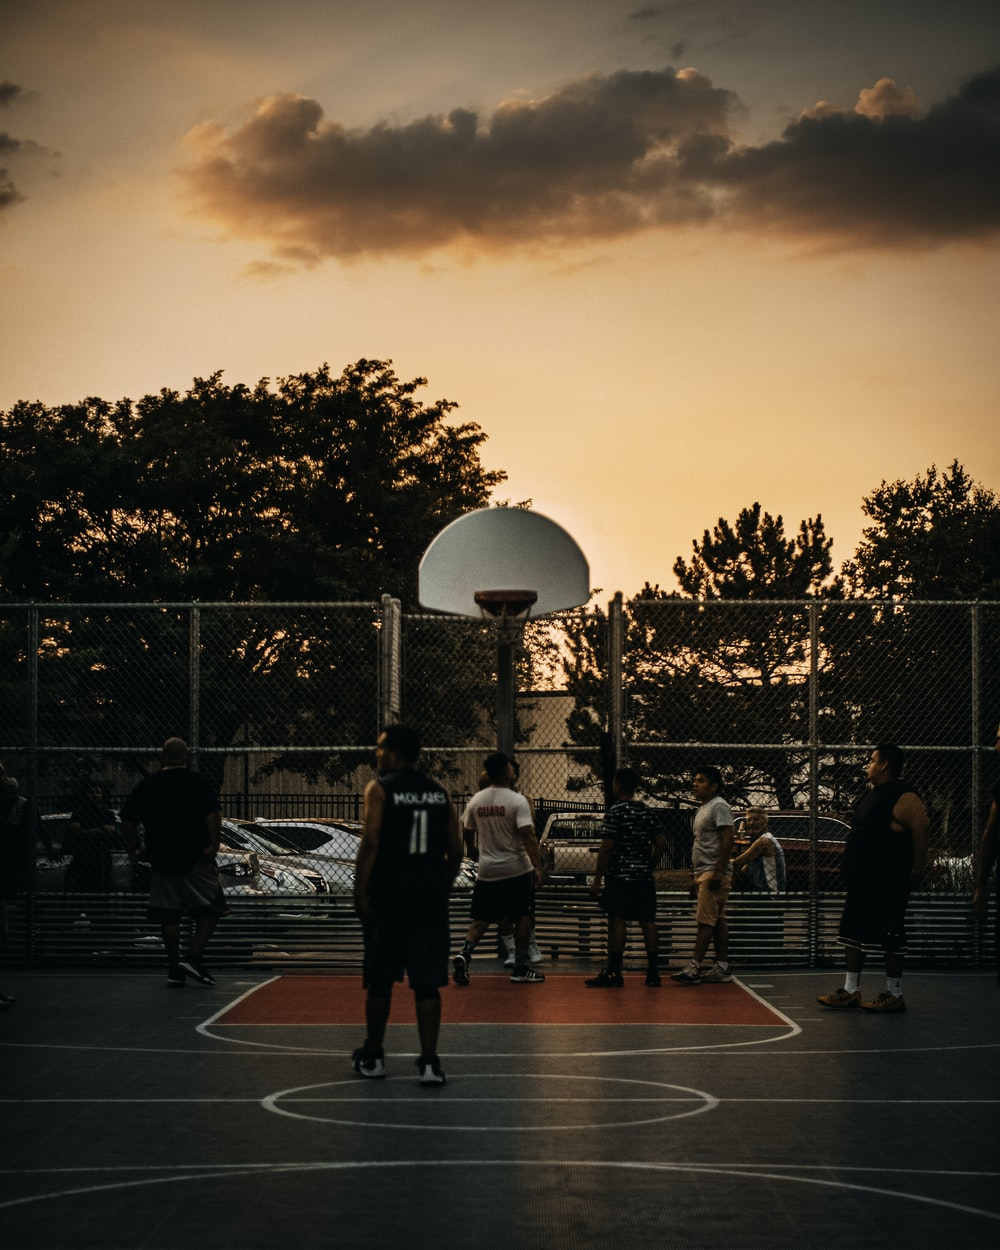 people playing basketball on court during sunset